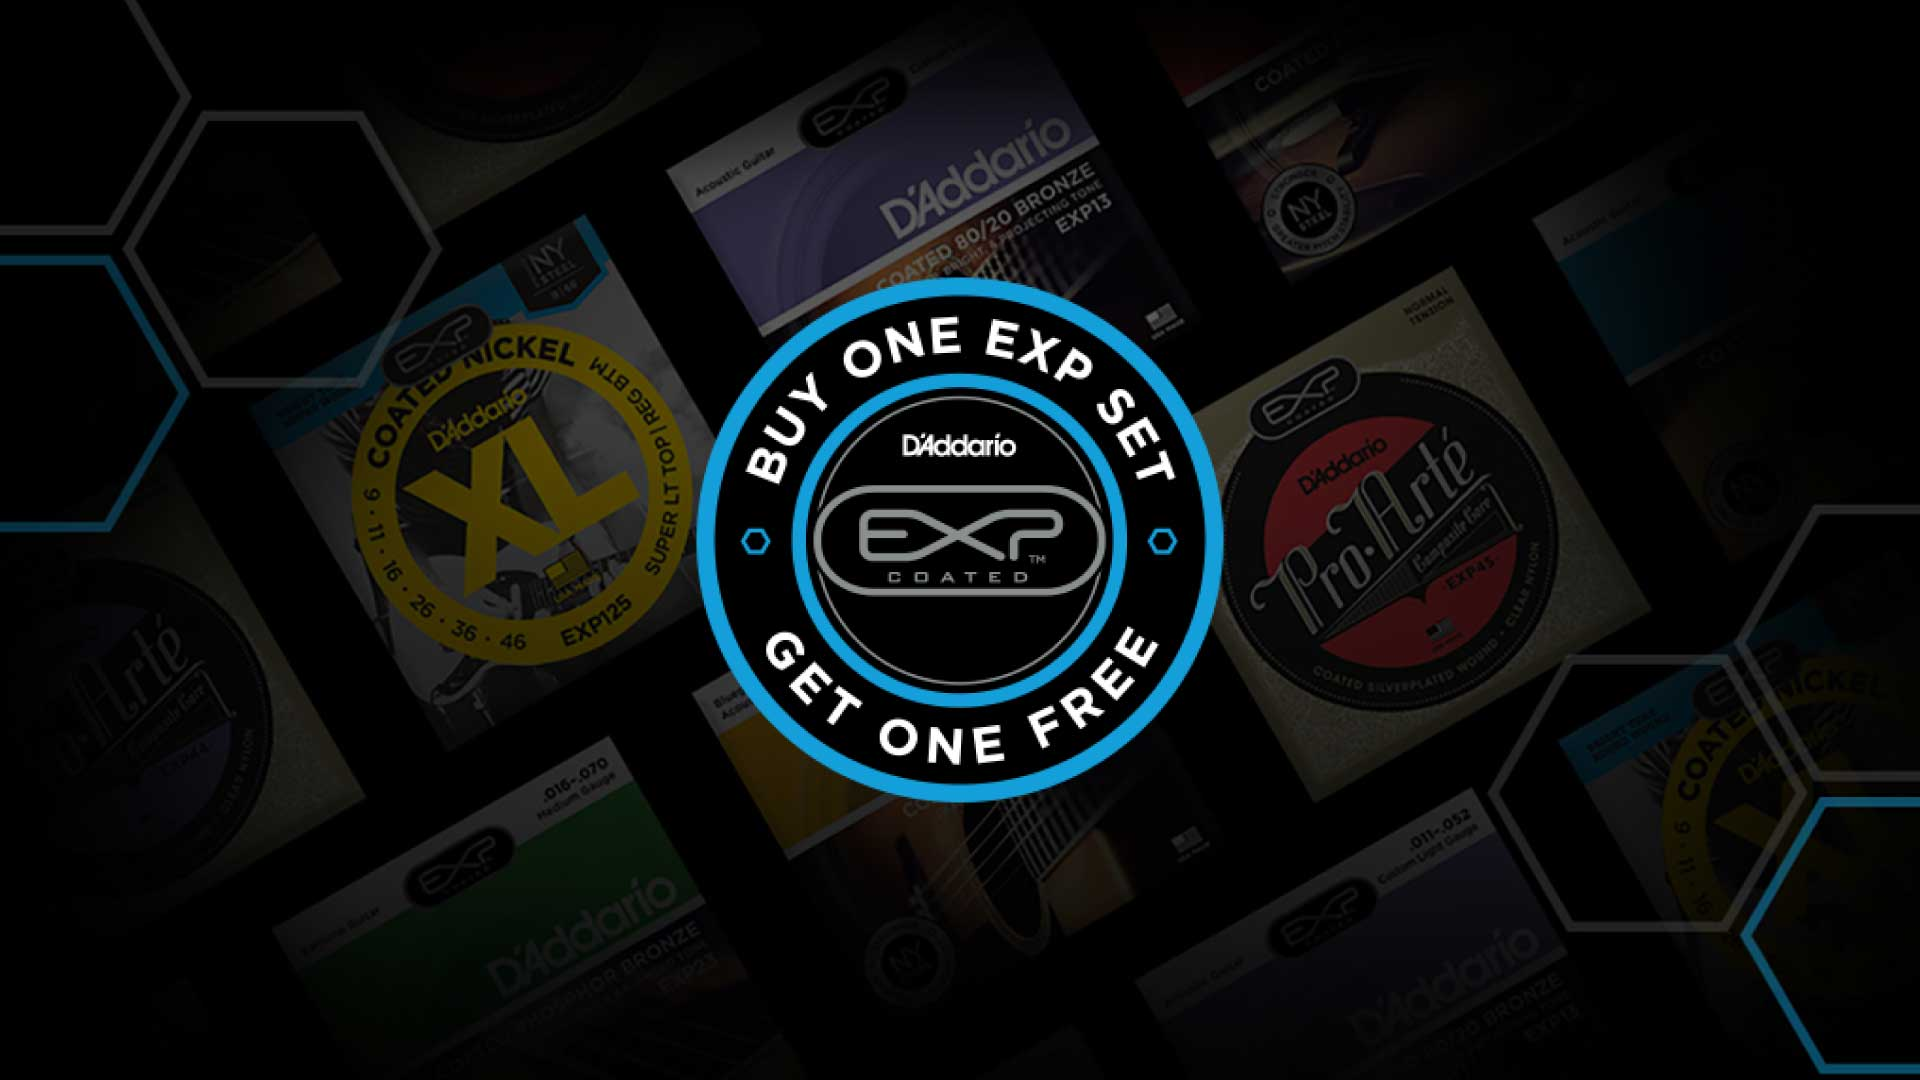 Limited Time: Buy One Get One Free, D'Addario EXP Strings